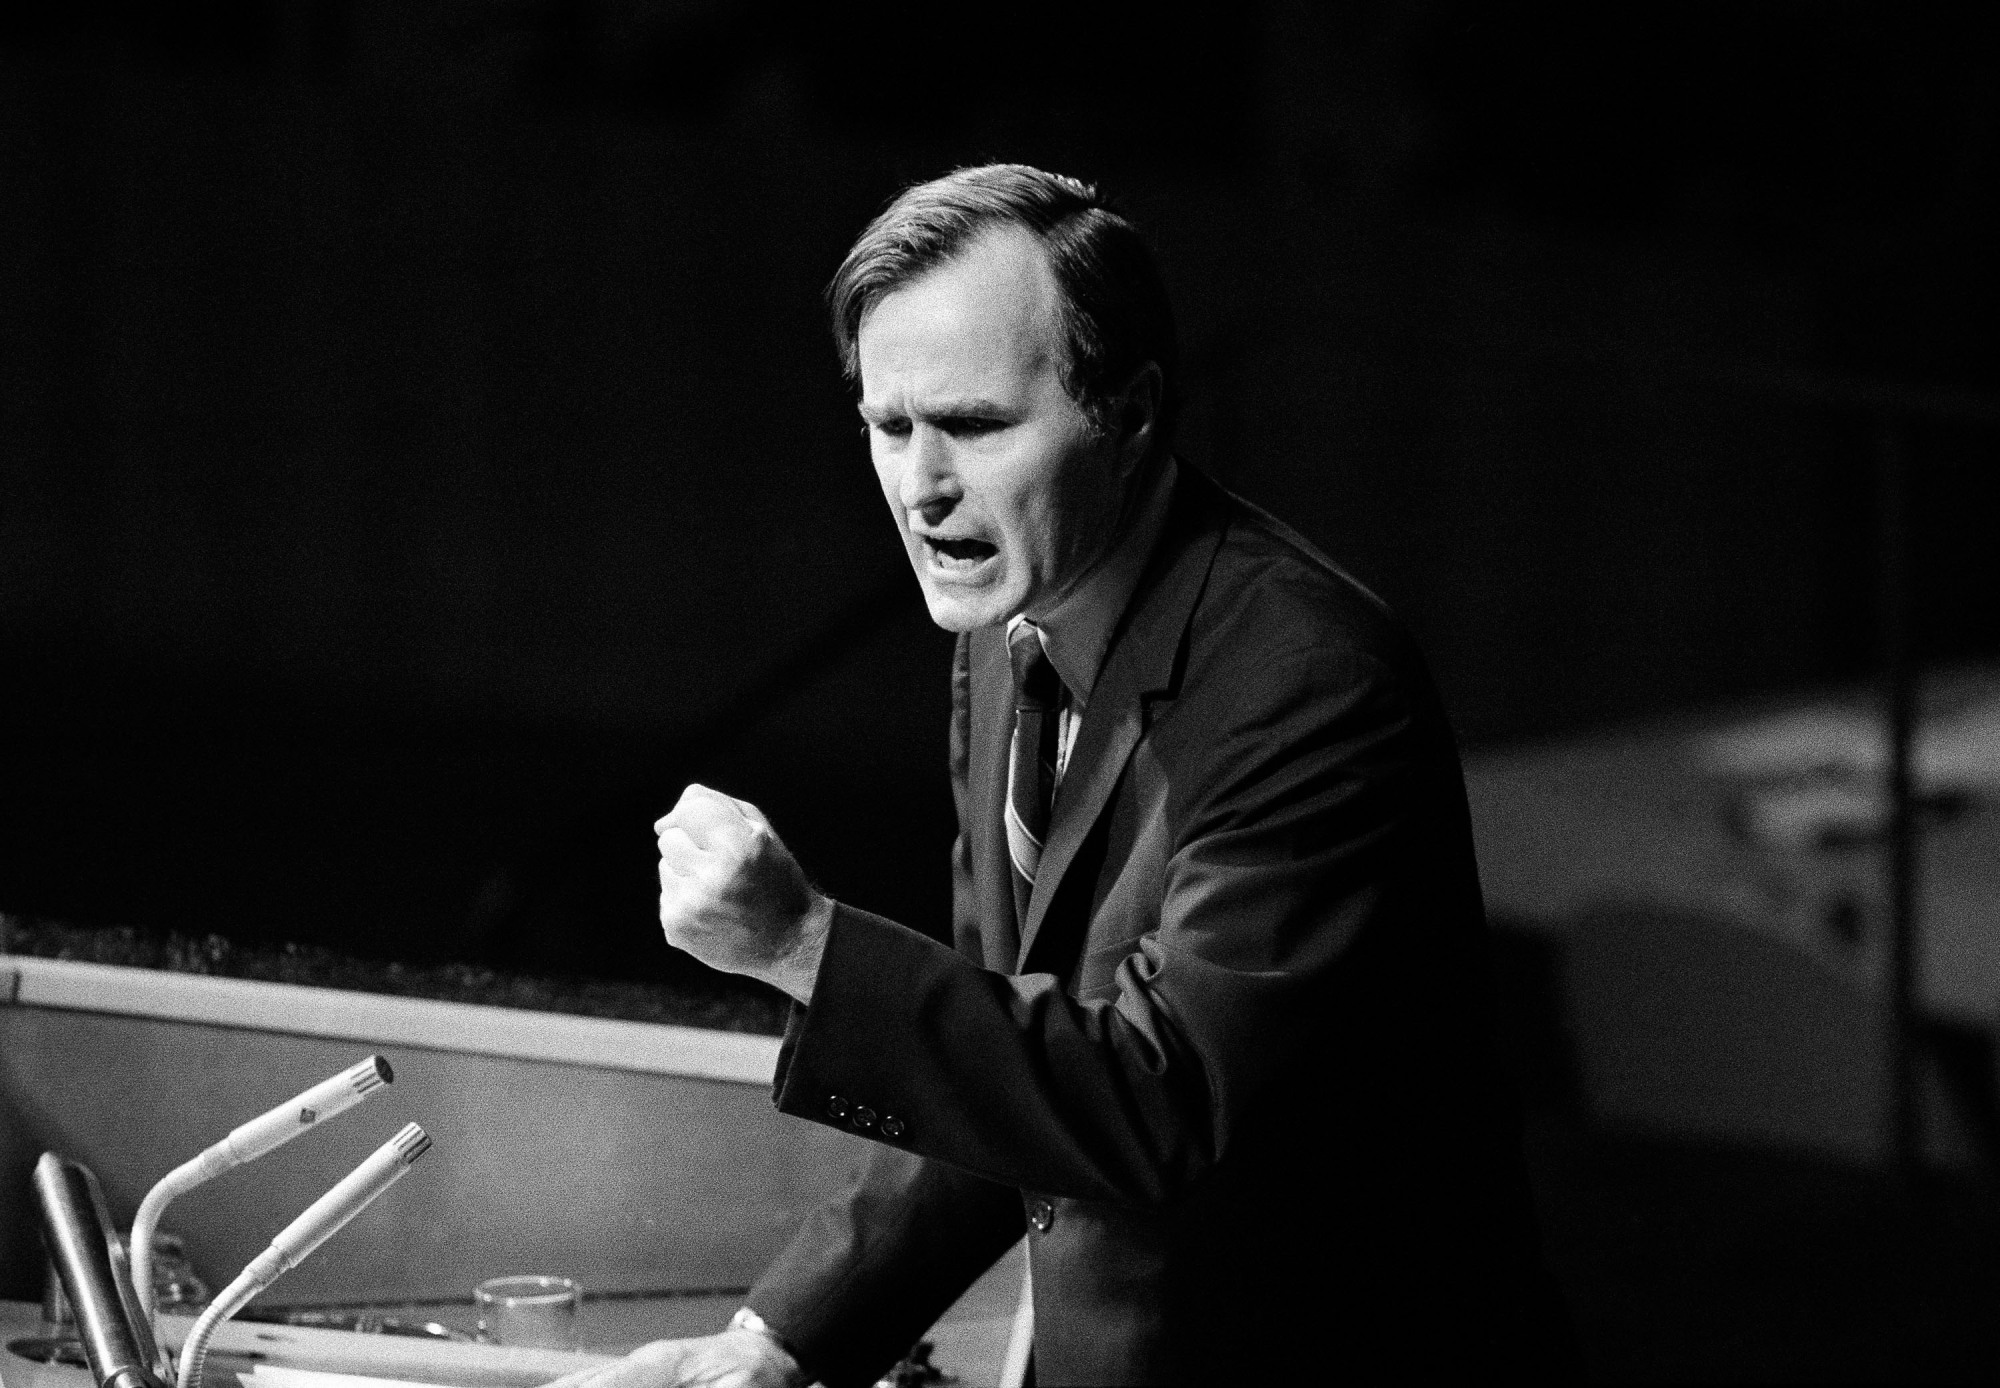 U.S. Ambassador George H.W. Bush gestures as he addresses the United Nations General Assembly during the China debate on Oct. 18, 1971. Bush died on Friday at the age of 94. | AP